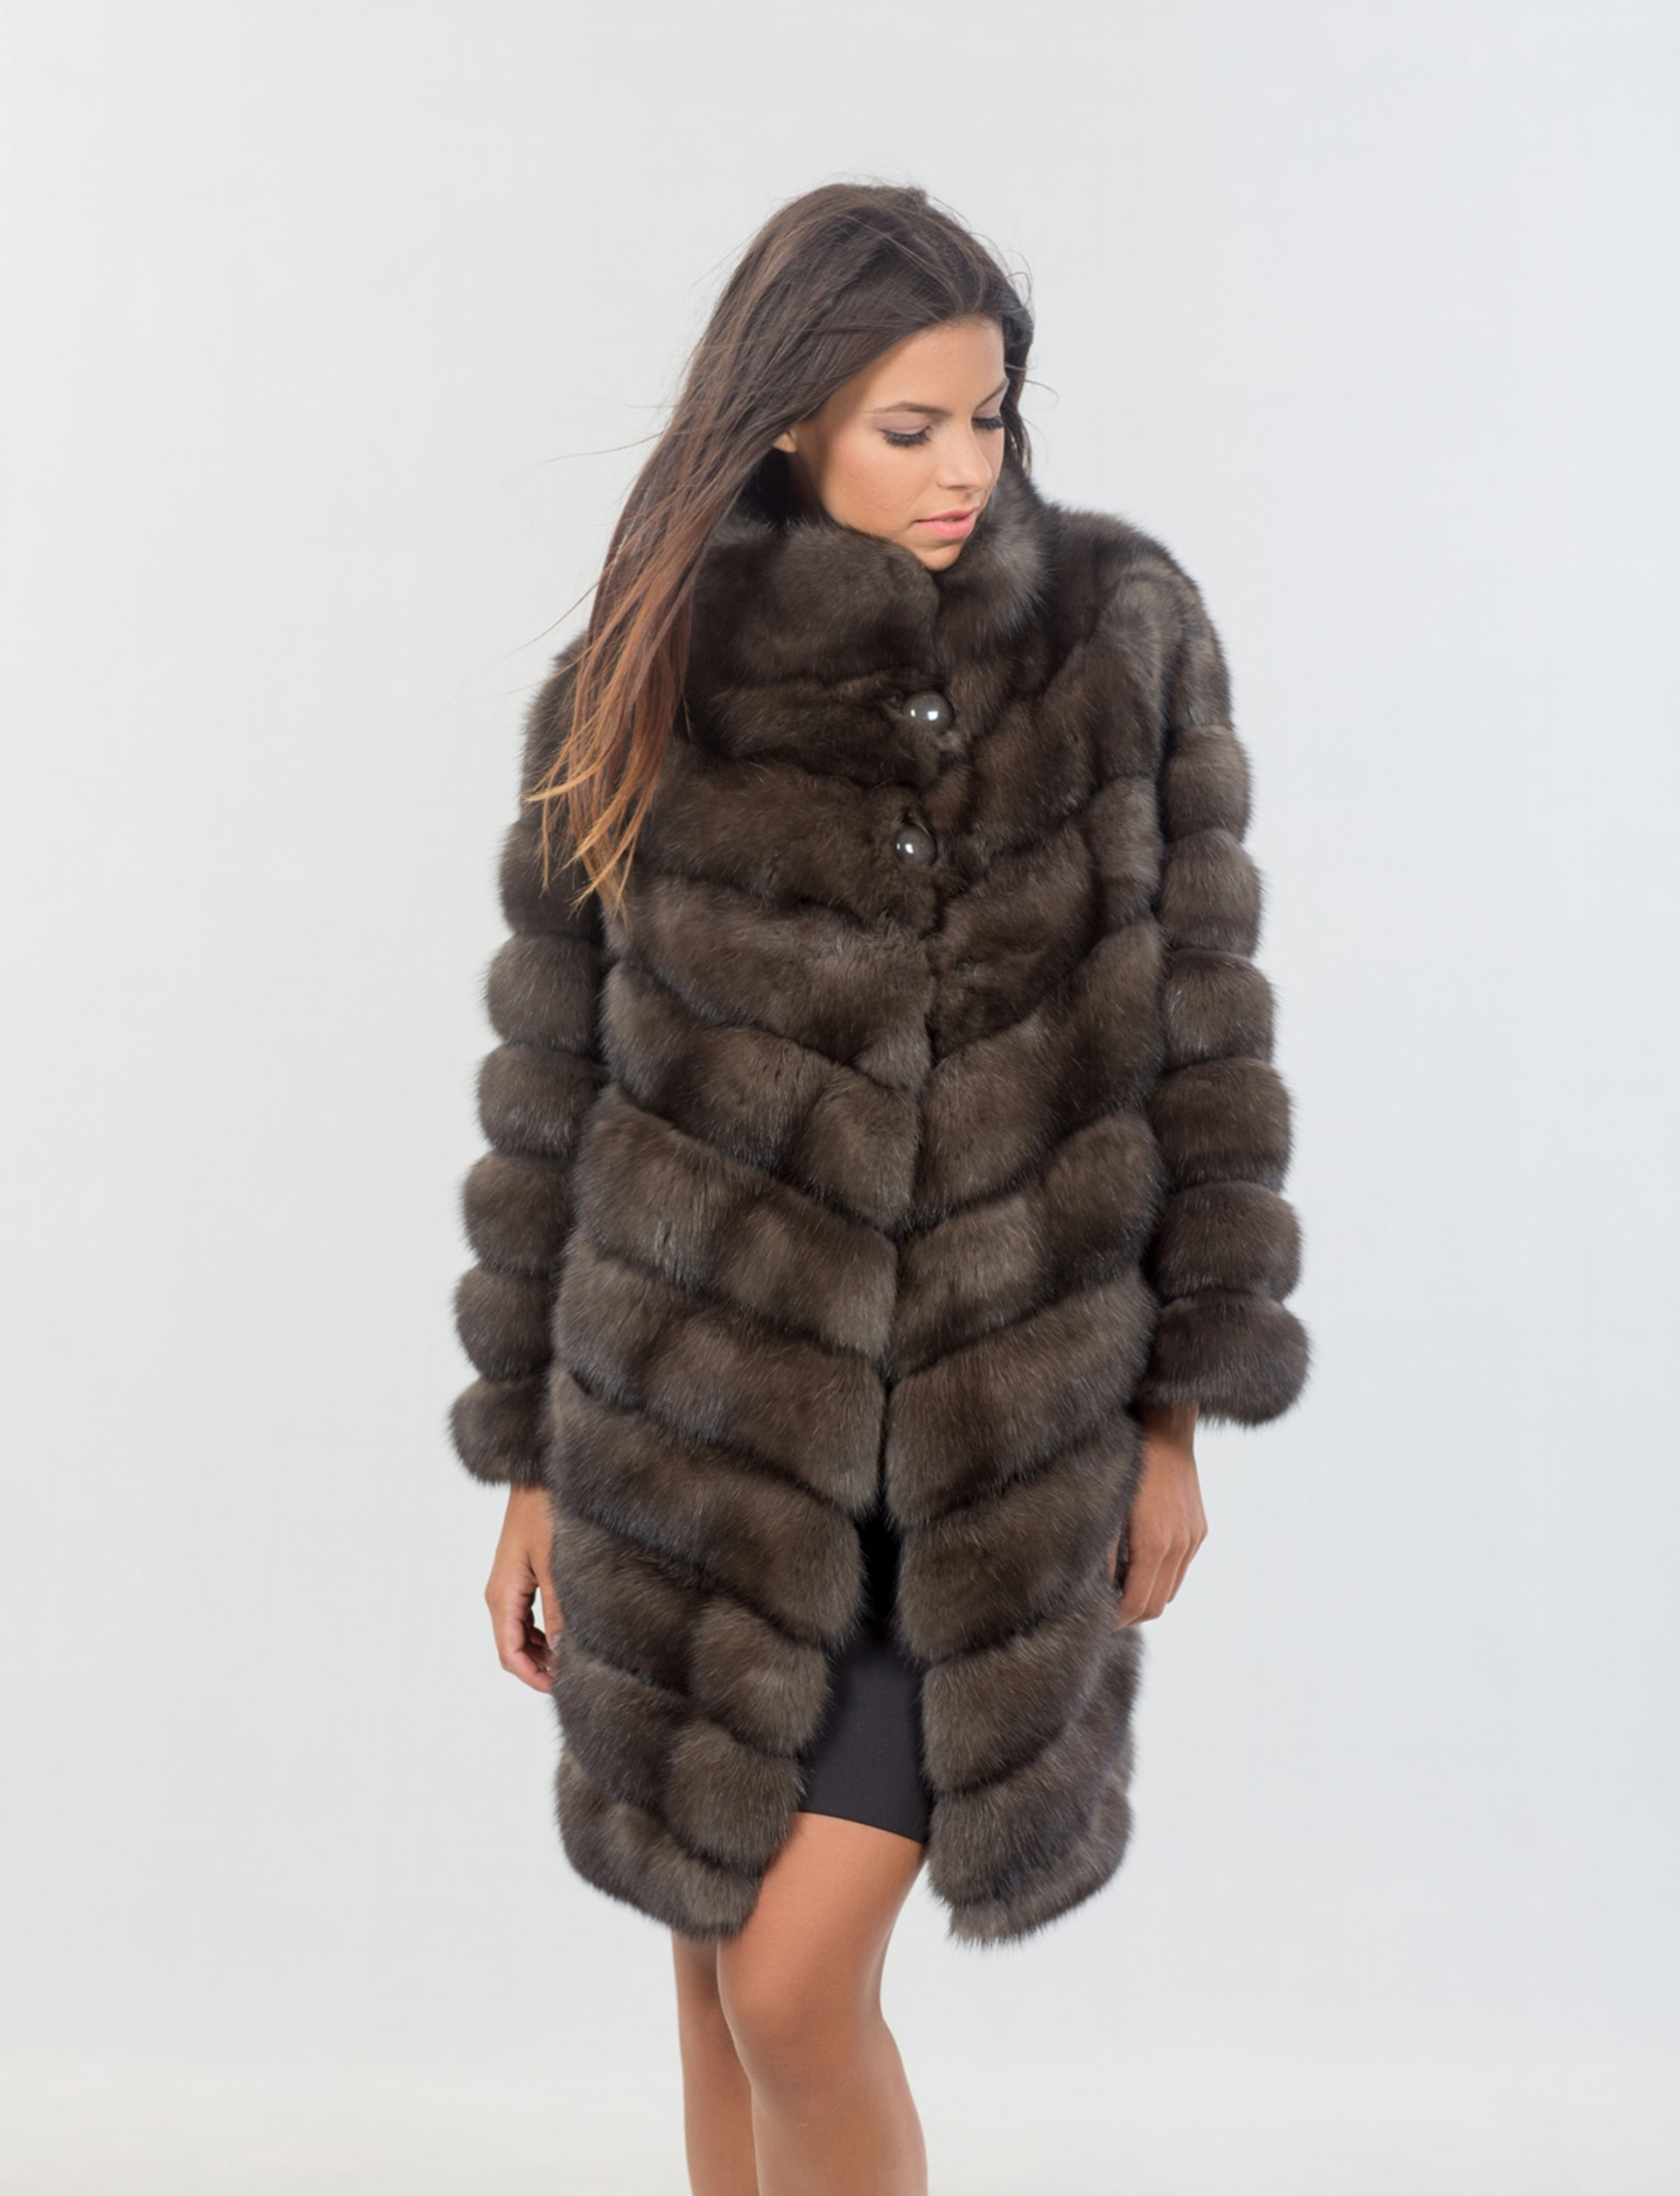 Sable fur coat - Real fur jackets and vests. Worldwide shipping